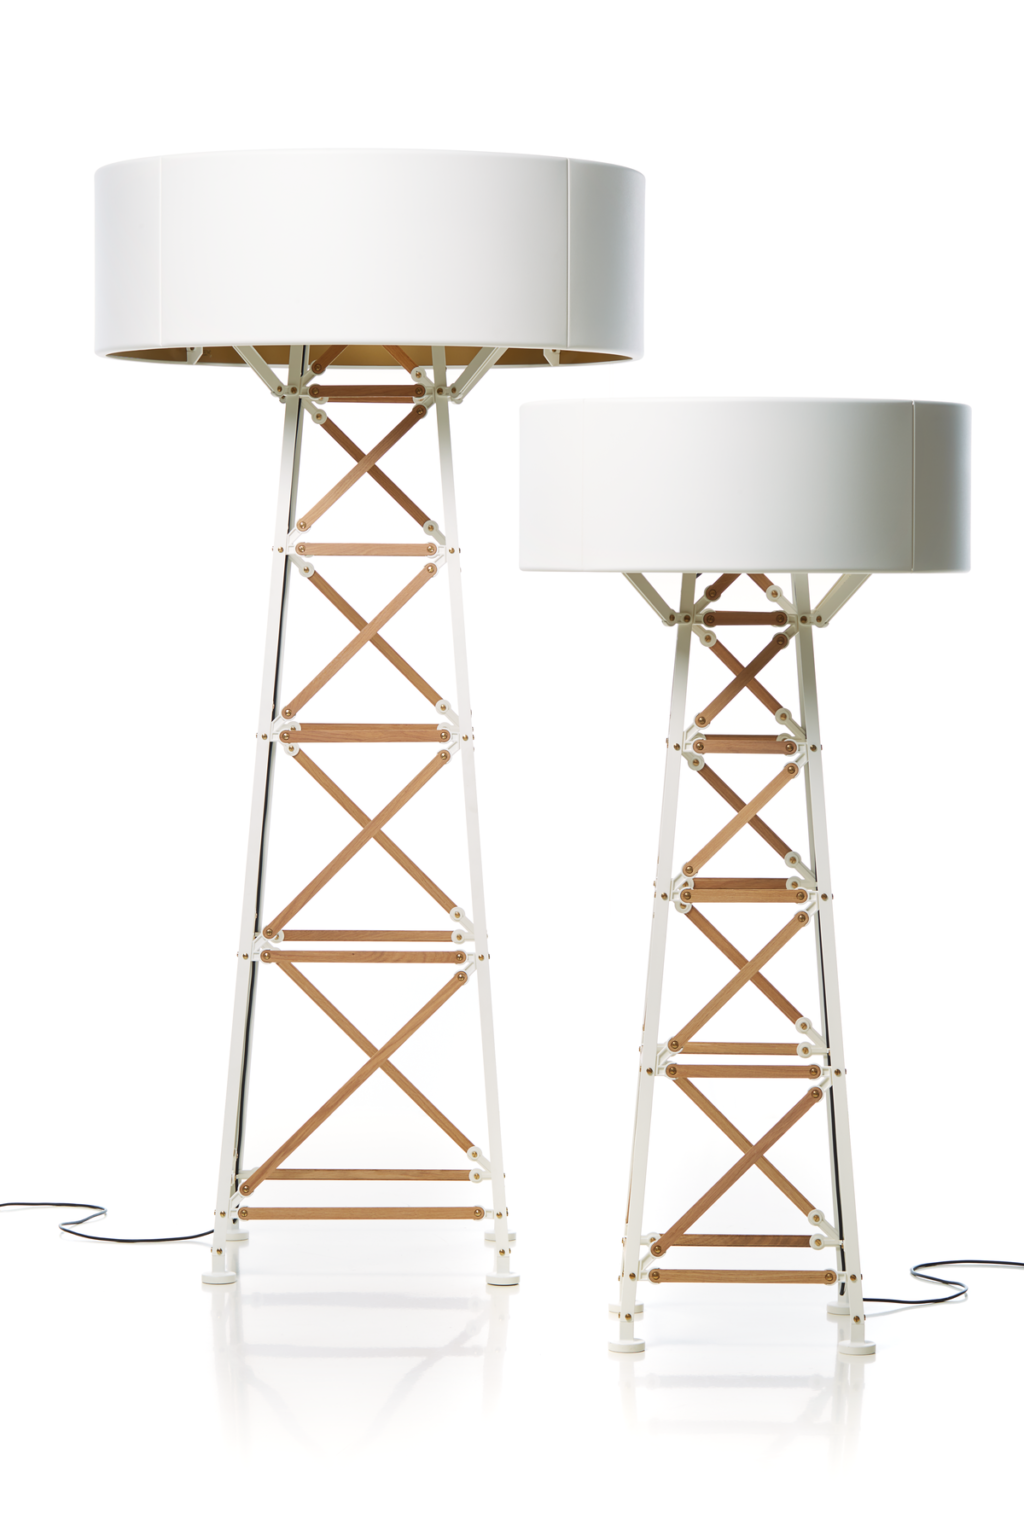 https://desidea.hu/wp-content/uploads/fly-images/160234/moooi-construction-allolampa5-1024x0.png